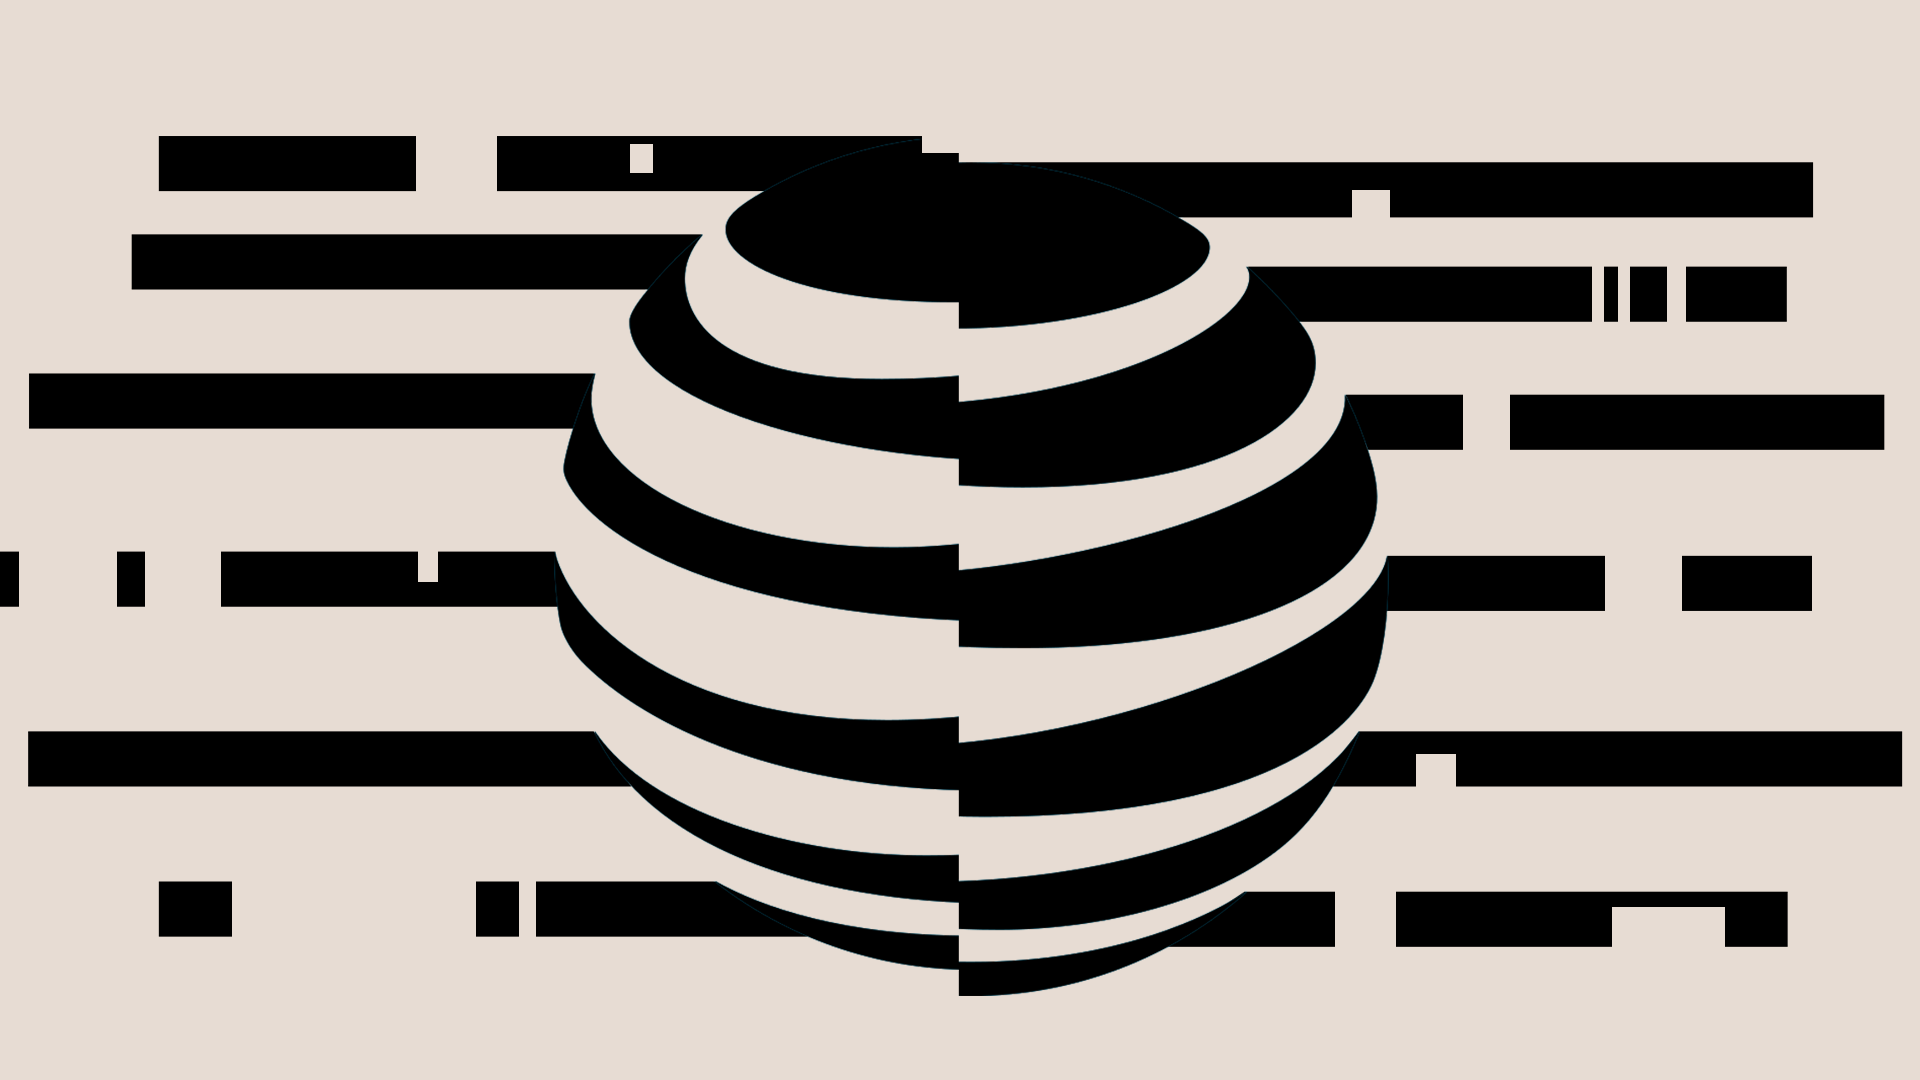 AT&T globe logo fractured